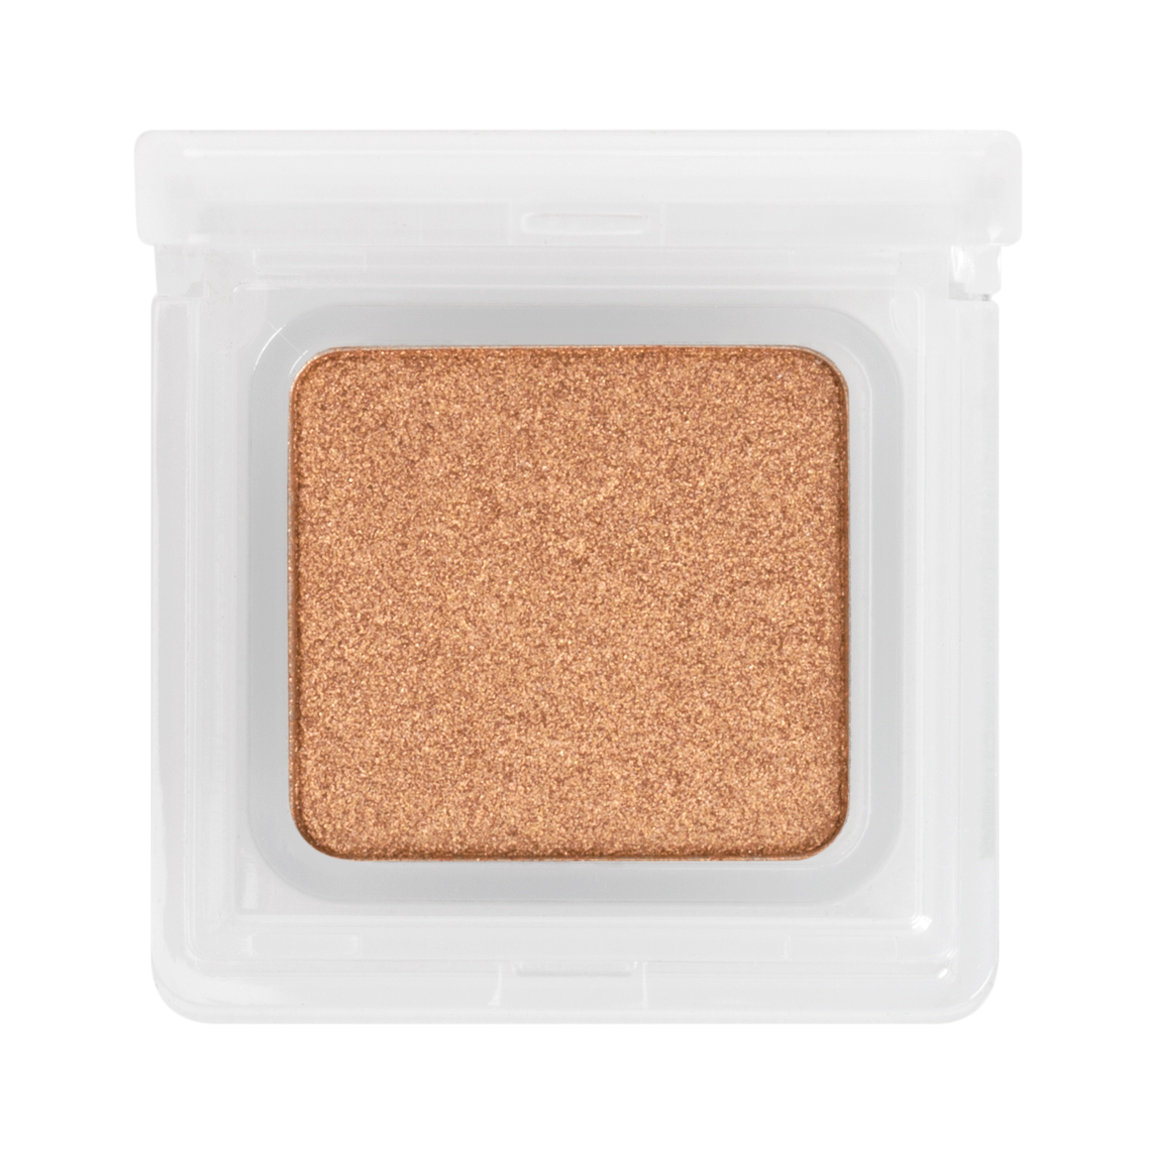 Natasha Denona - Mono Eye Shadow